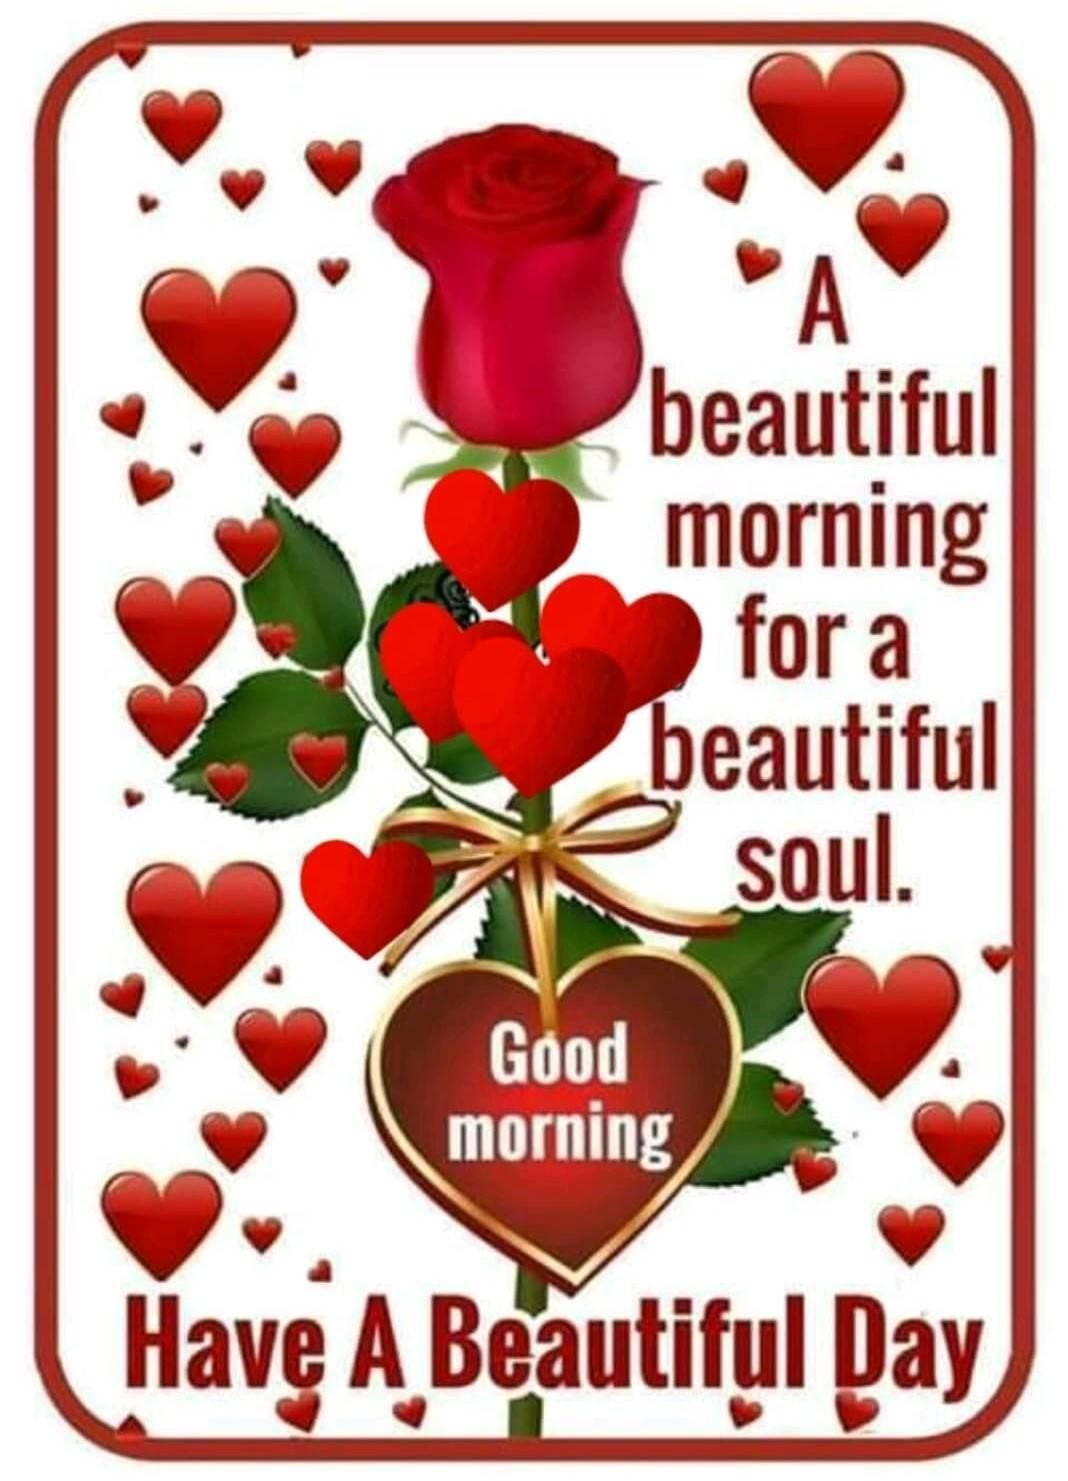 A Beautiful Morning For A Beautiful Soul Pictures Photos And Images For Facebook Tumblr Good Morning Sister Beautiful Morning Quotes Good Morning Thursday